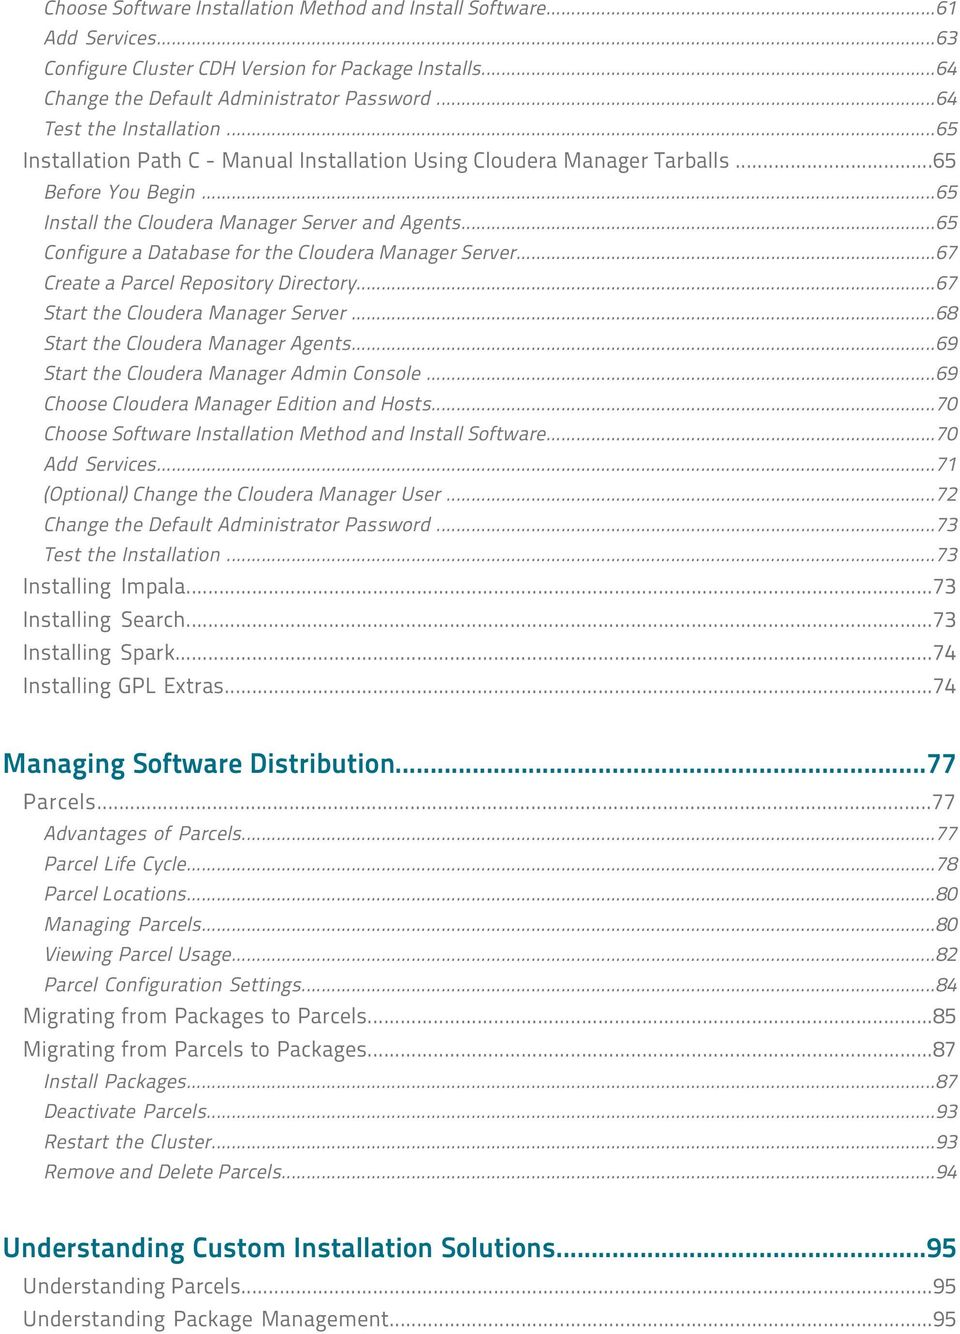 Cloudera Manager Installation Guide - PDF